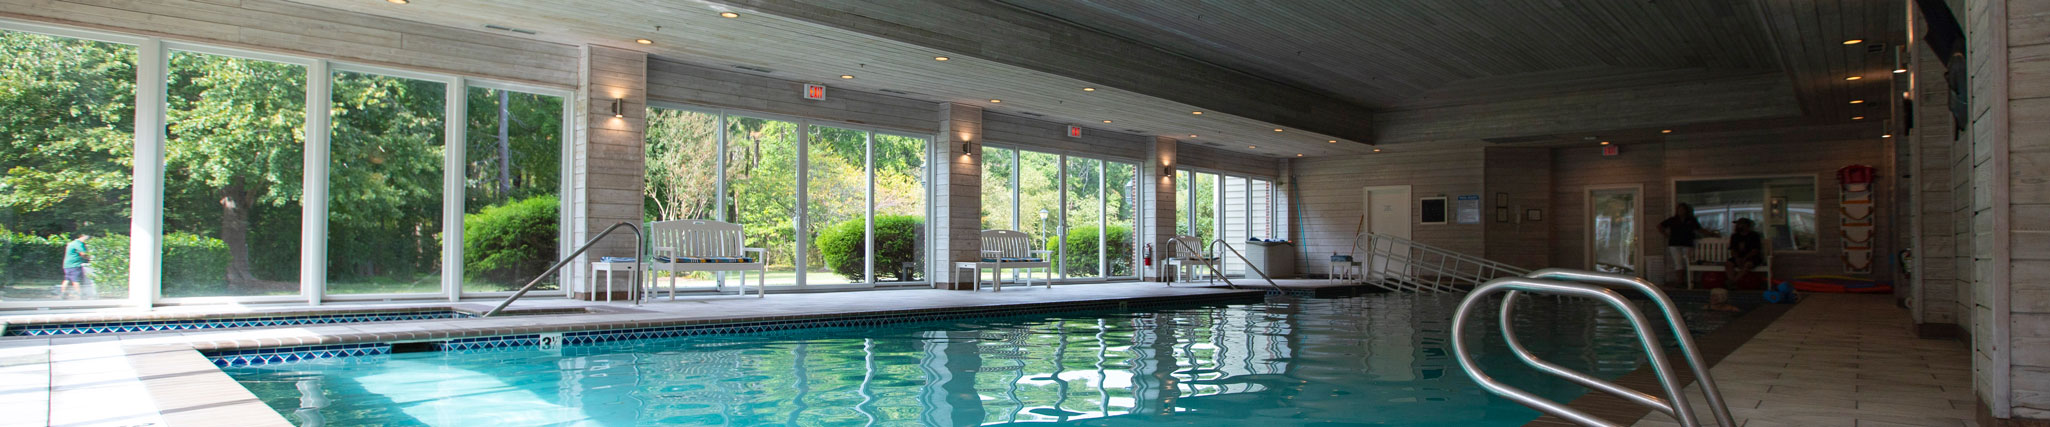 Active and Independent Senior Lifestyle Atlantic Shores